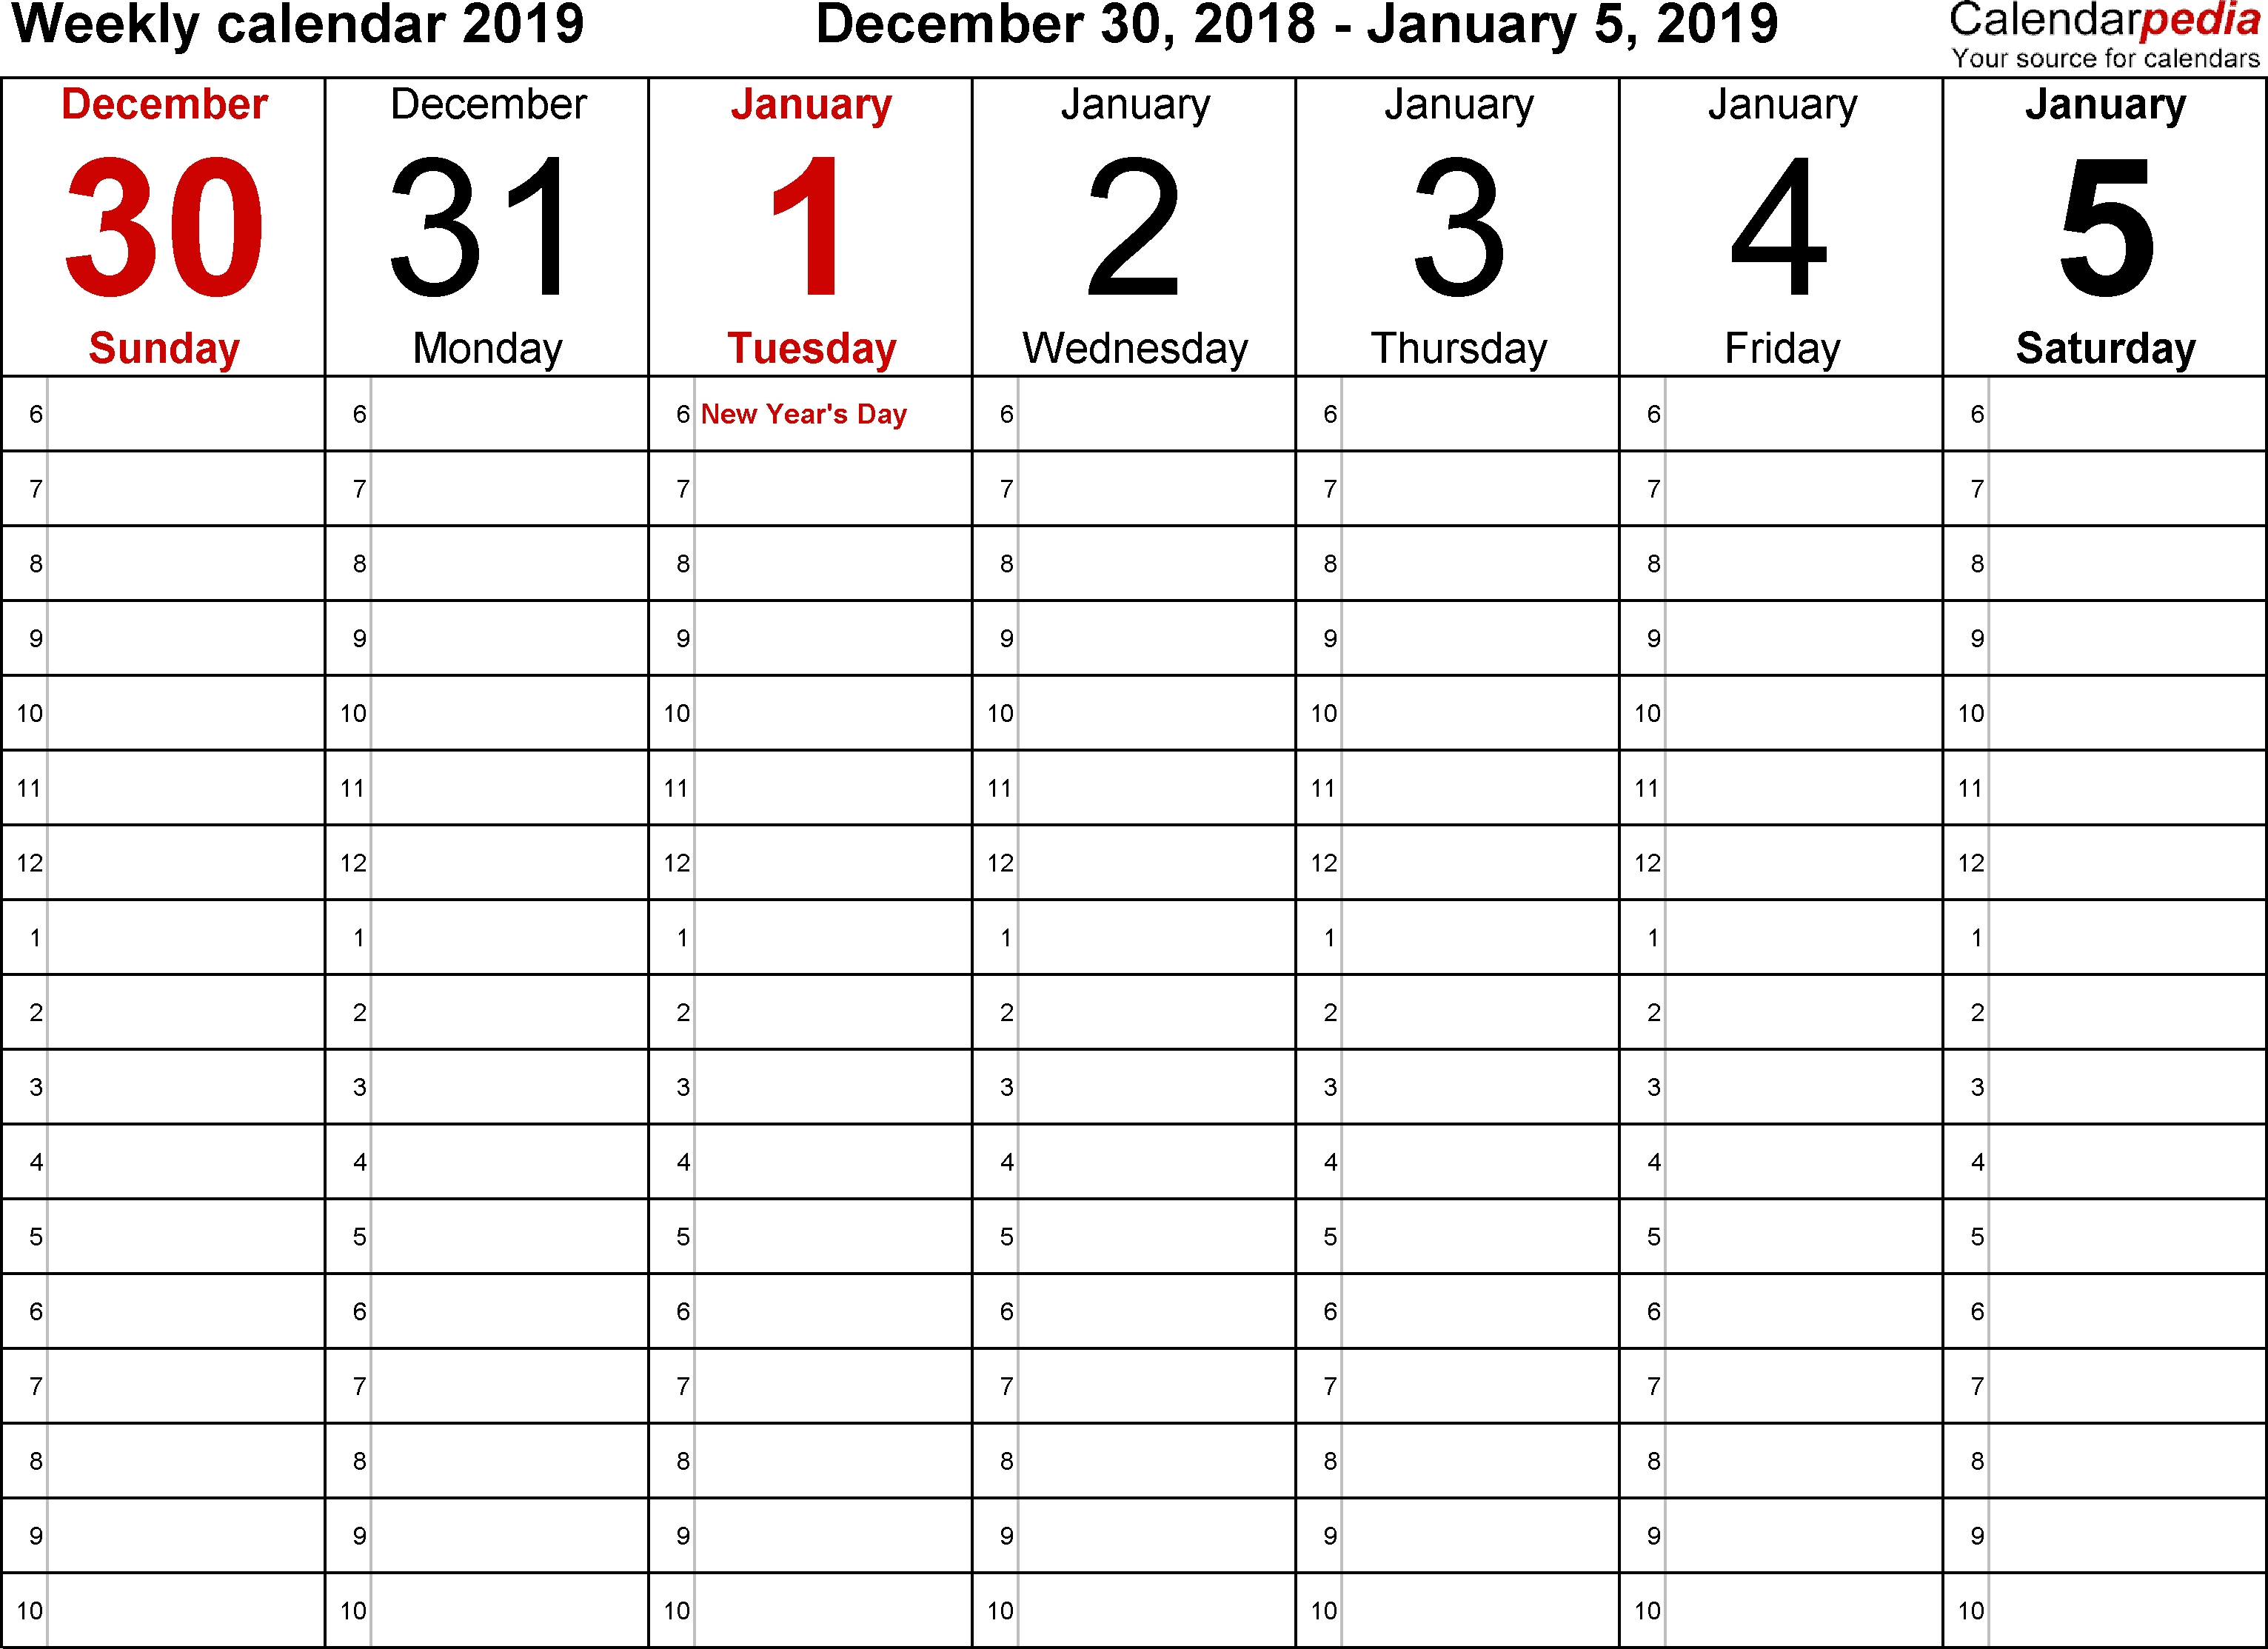 Weekly Calendars 2019 For Excel - 12 Free Printable Templates